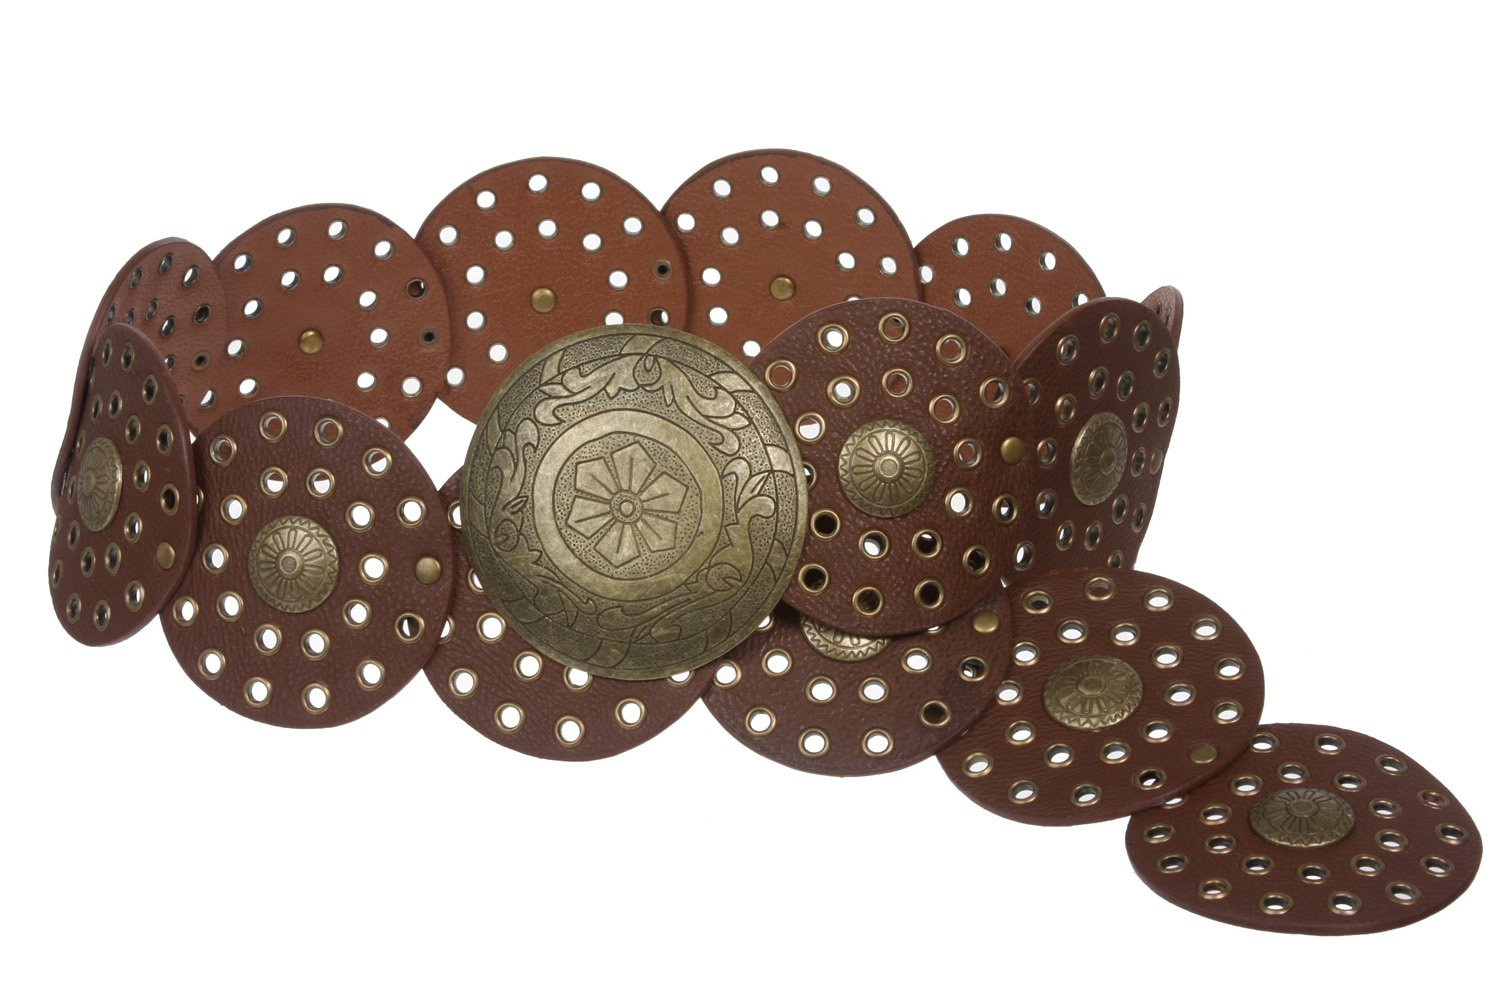 3 1/2'' (90 mm) Wide Ladies Wide Boho Disc Concho Leather Belt, Tan   XXXL - 54 END-TO-END